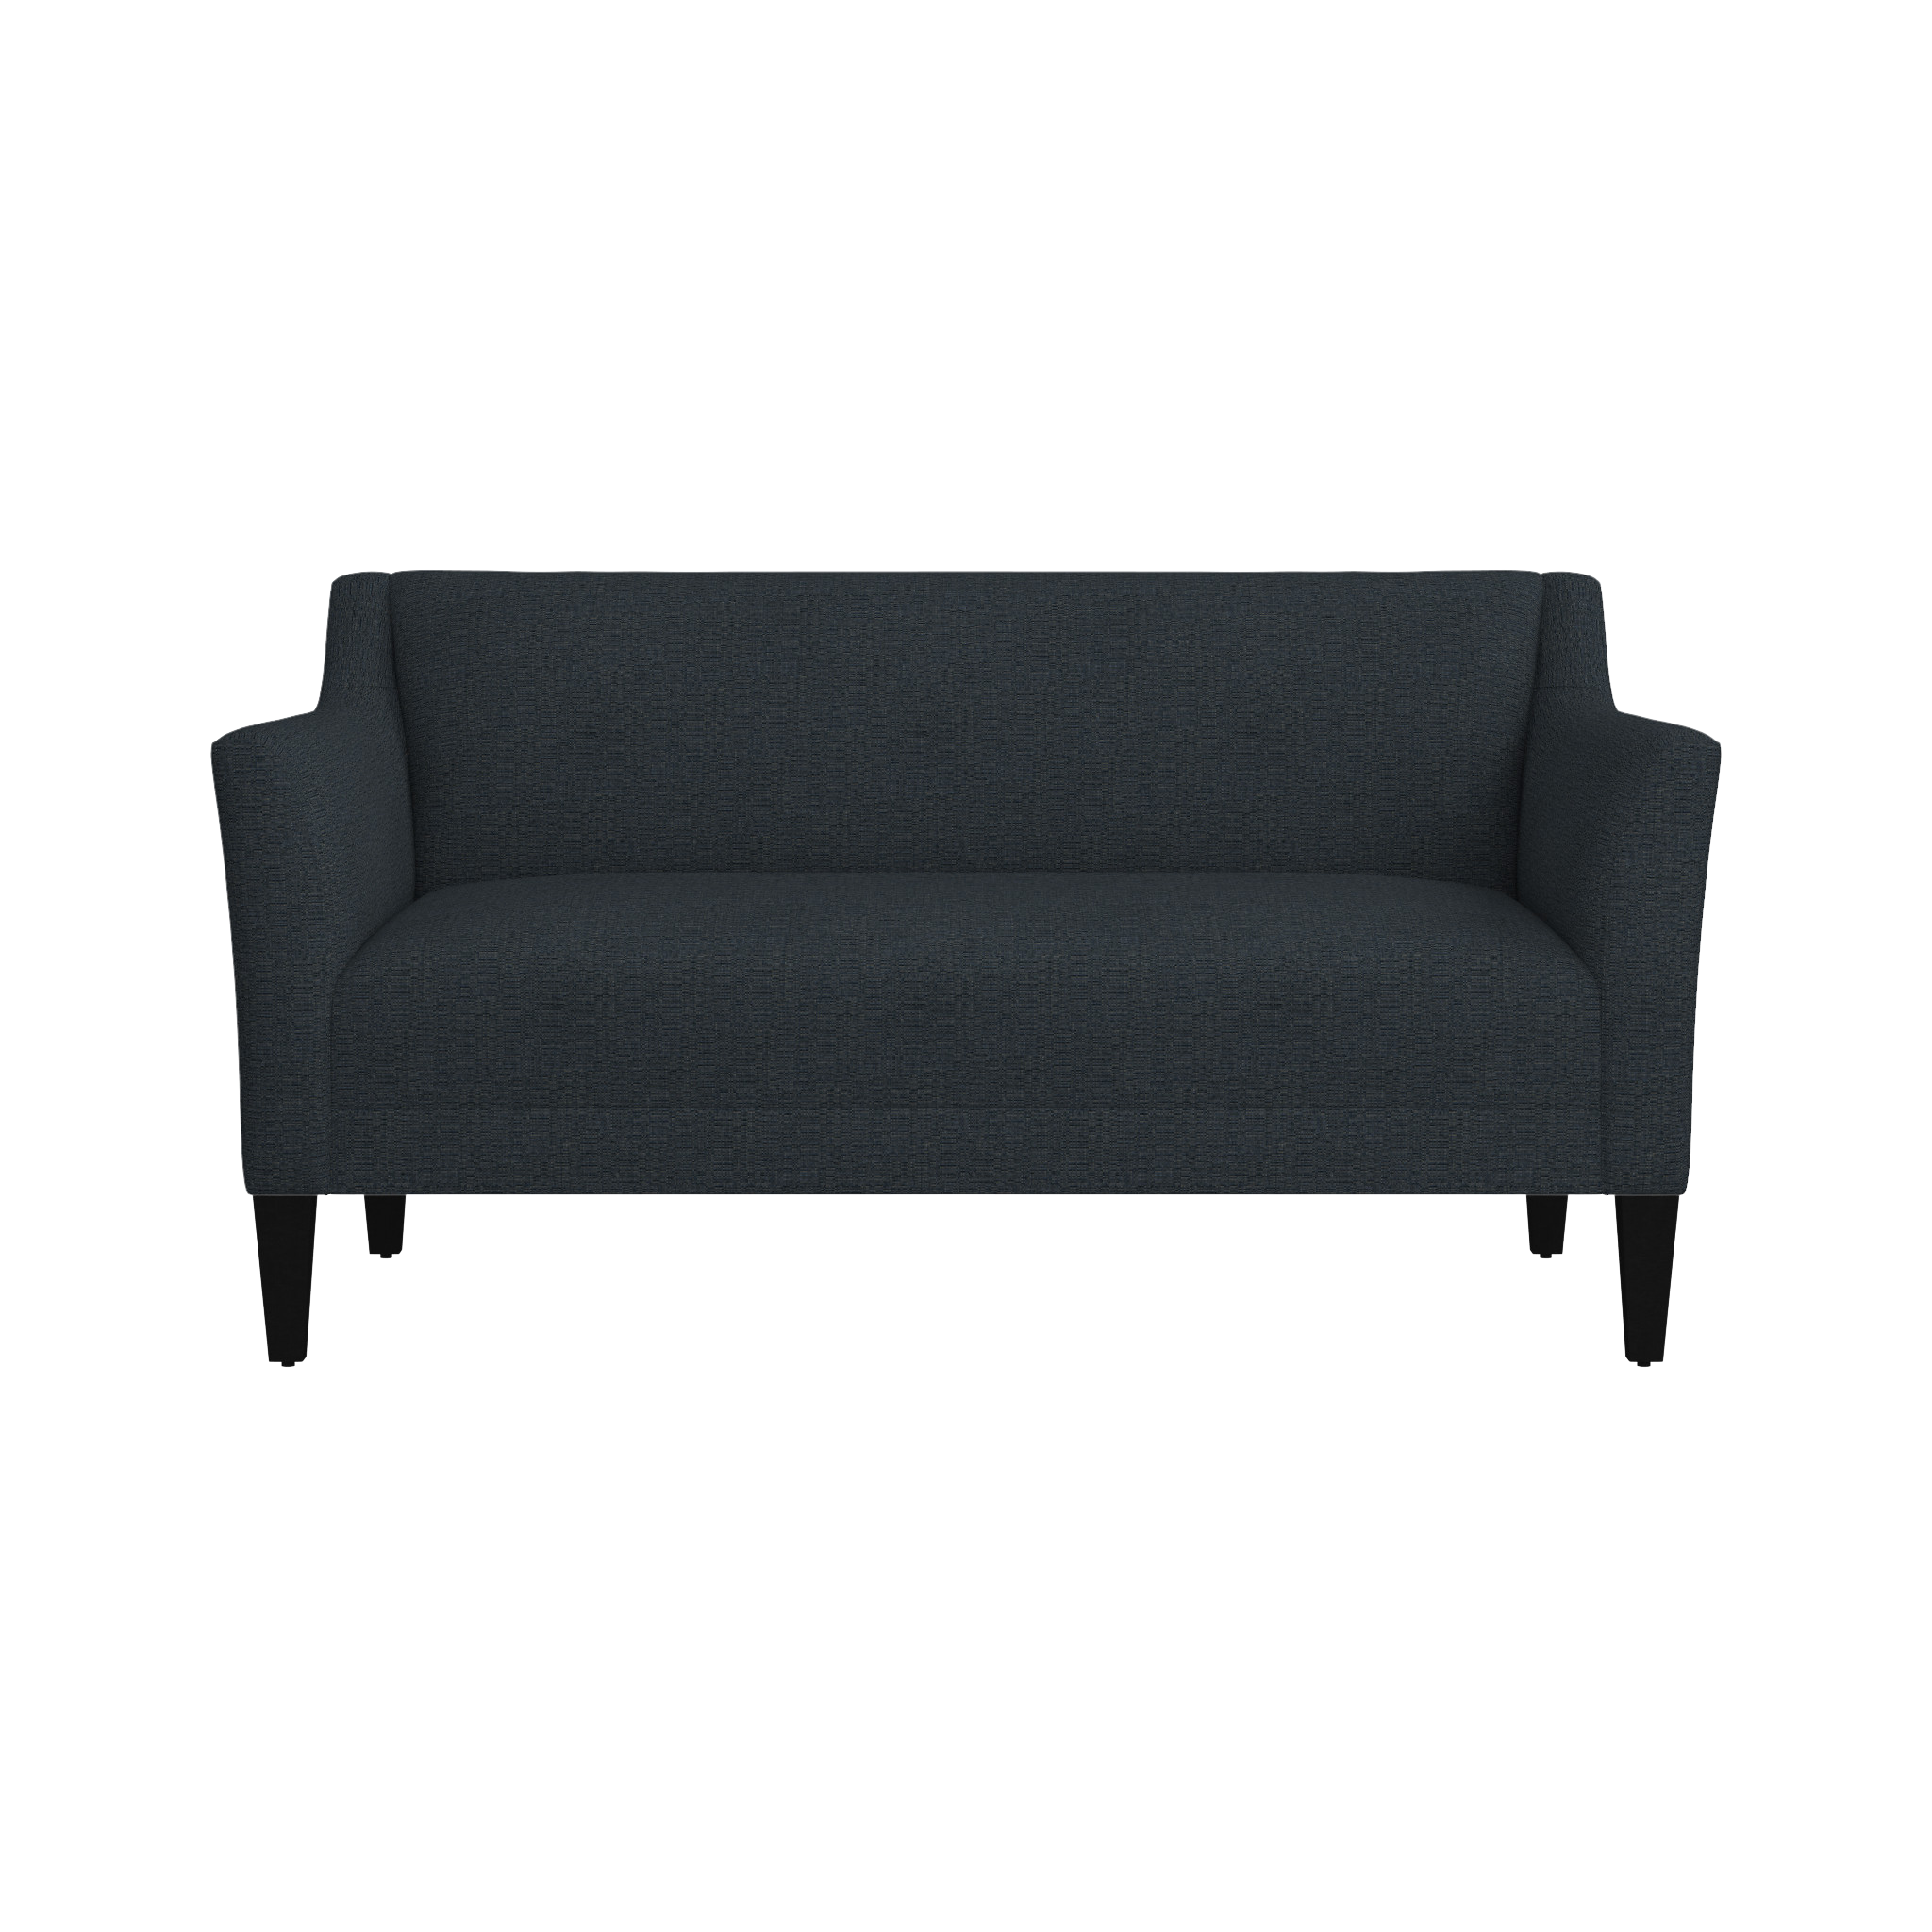 Margot ii sectional parts margot blue loveseat crate and barrel